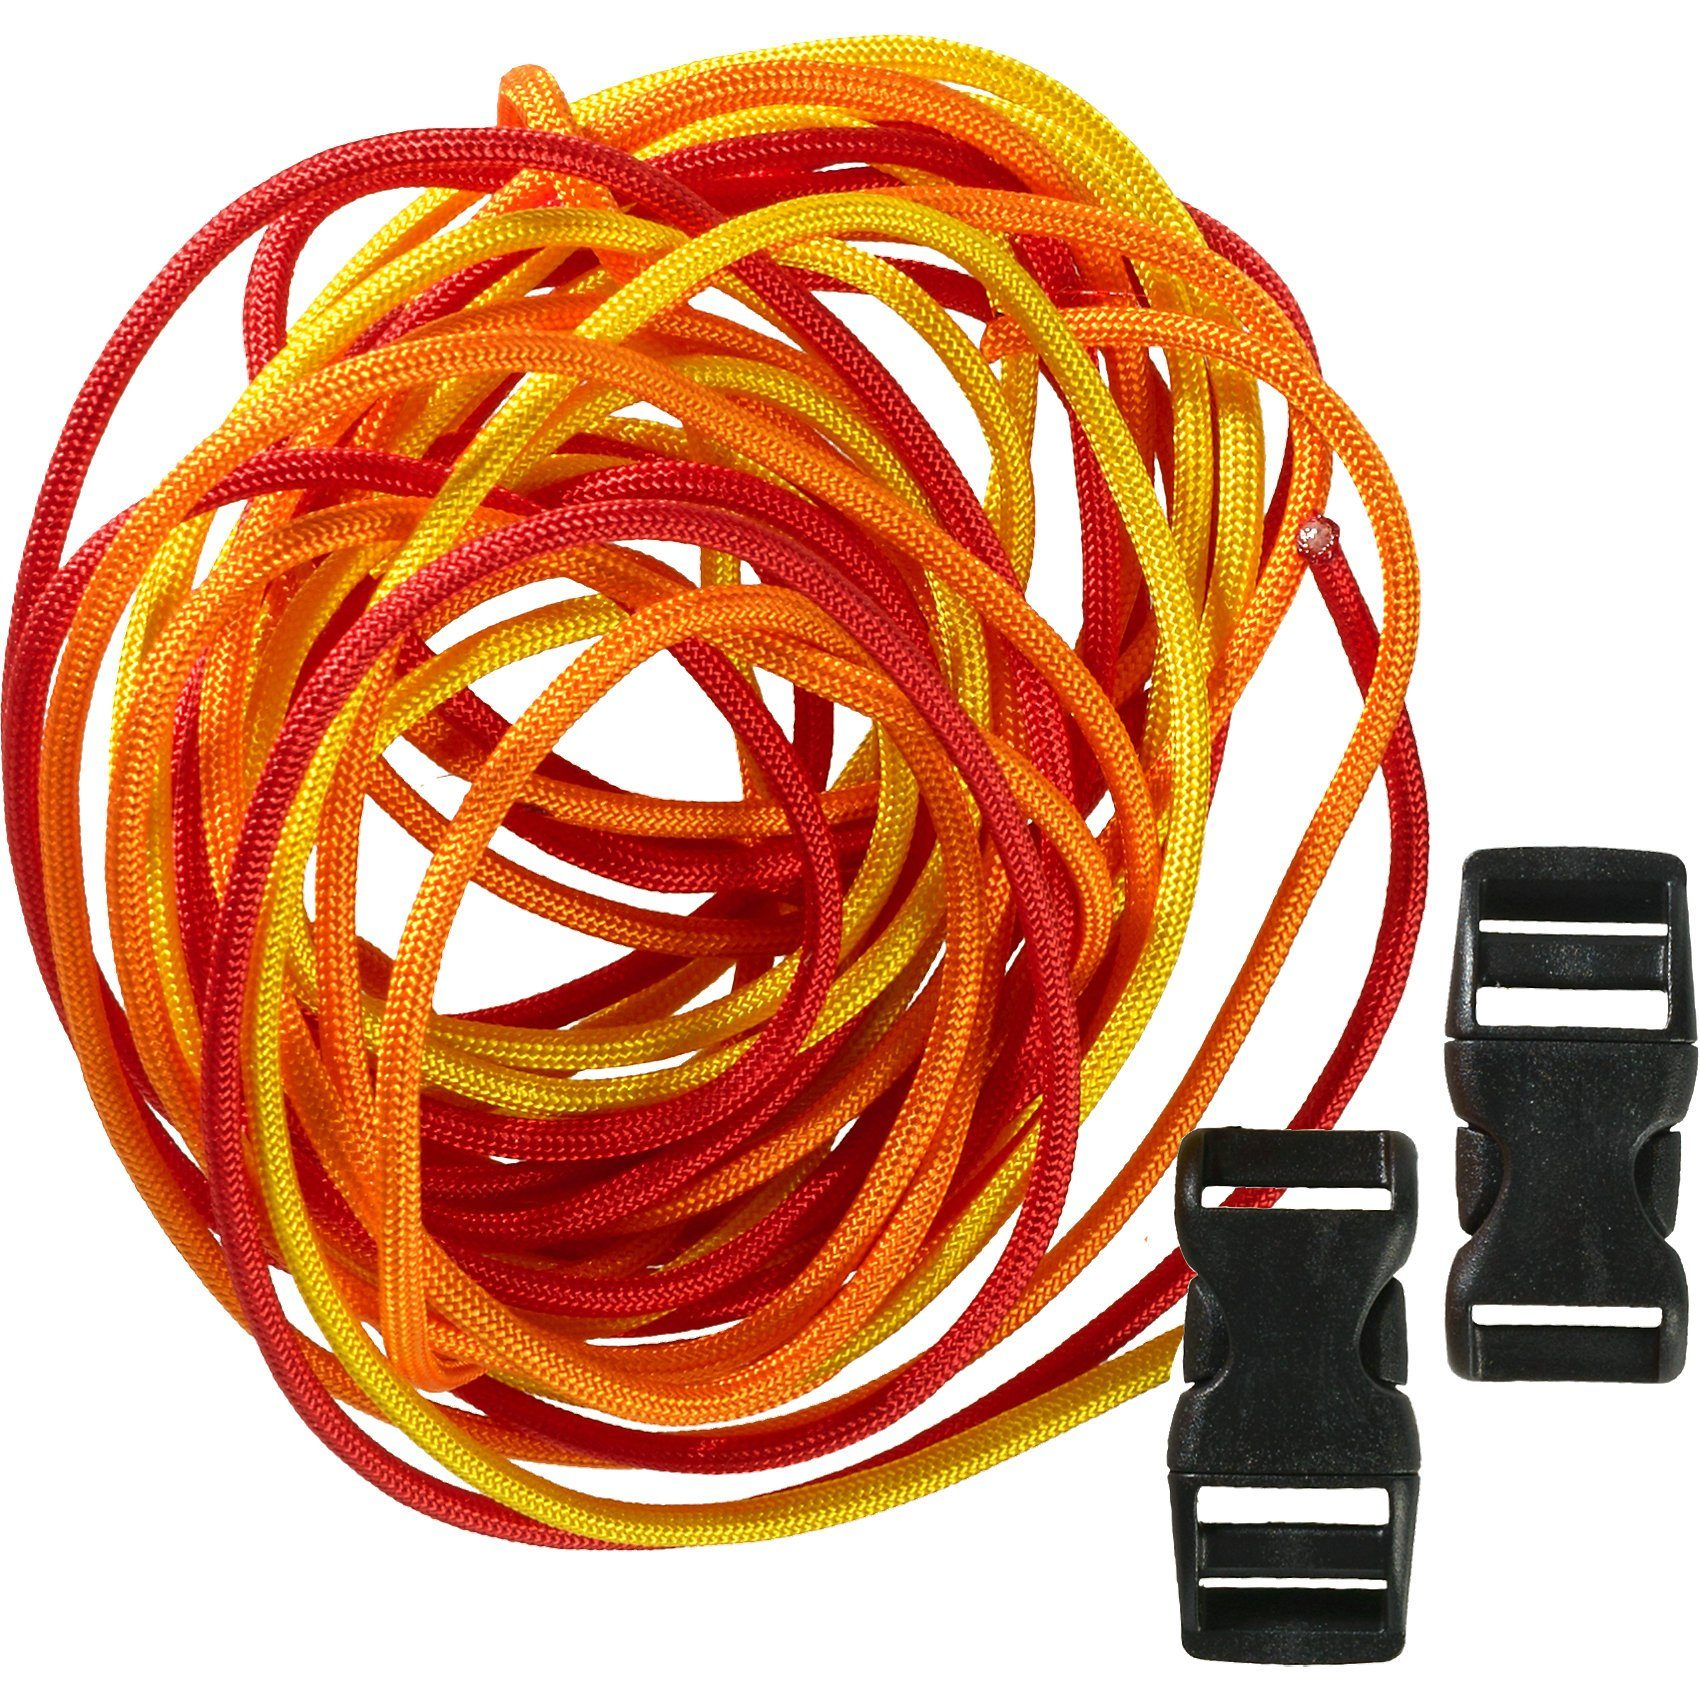 Hotex Kreativset Paracord gelb-orange-rot, 5-tlg.